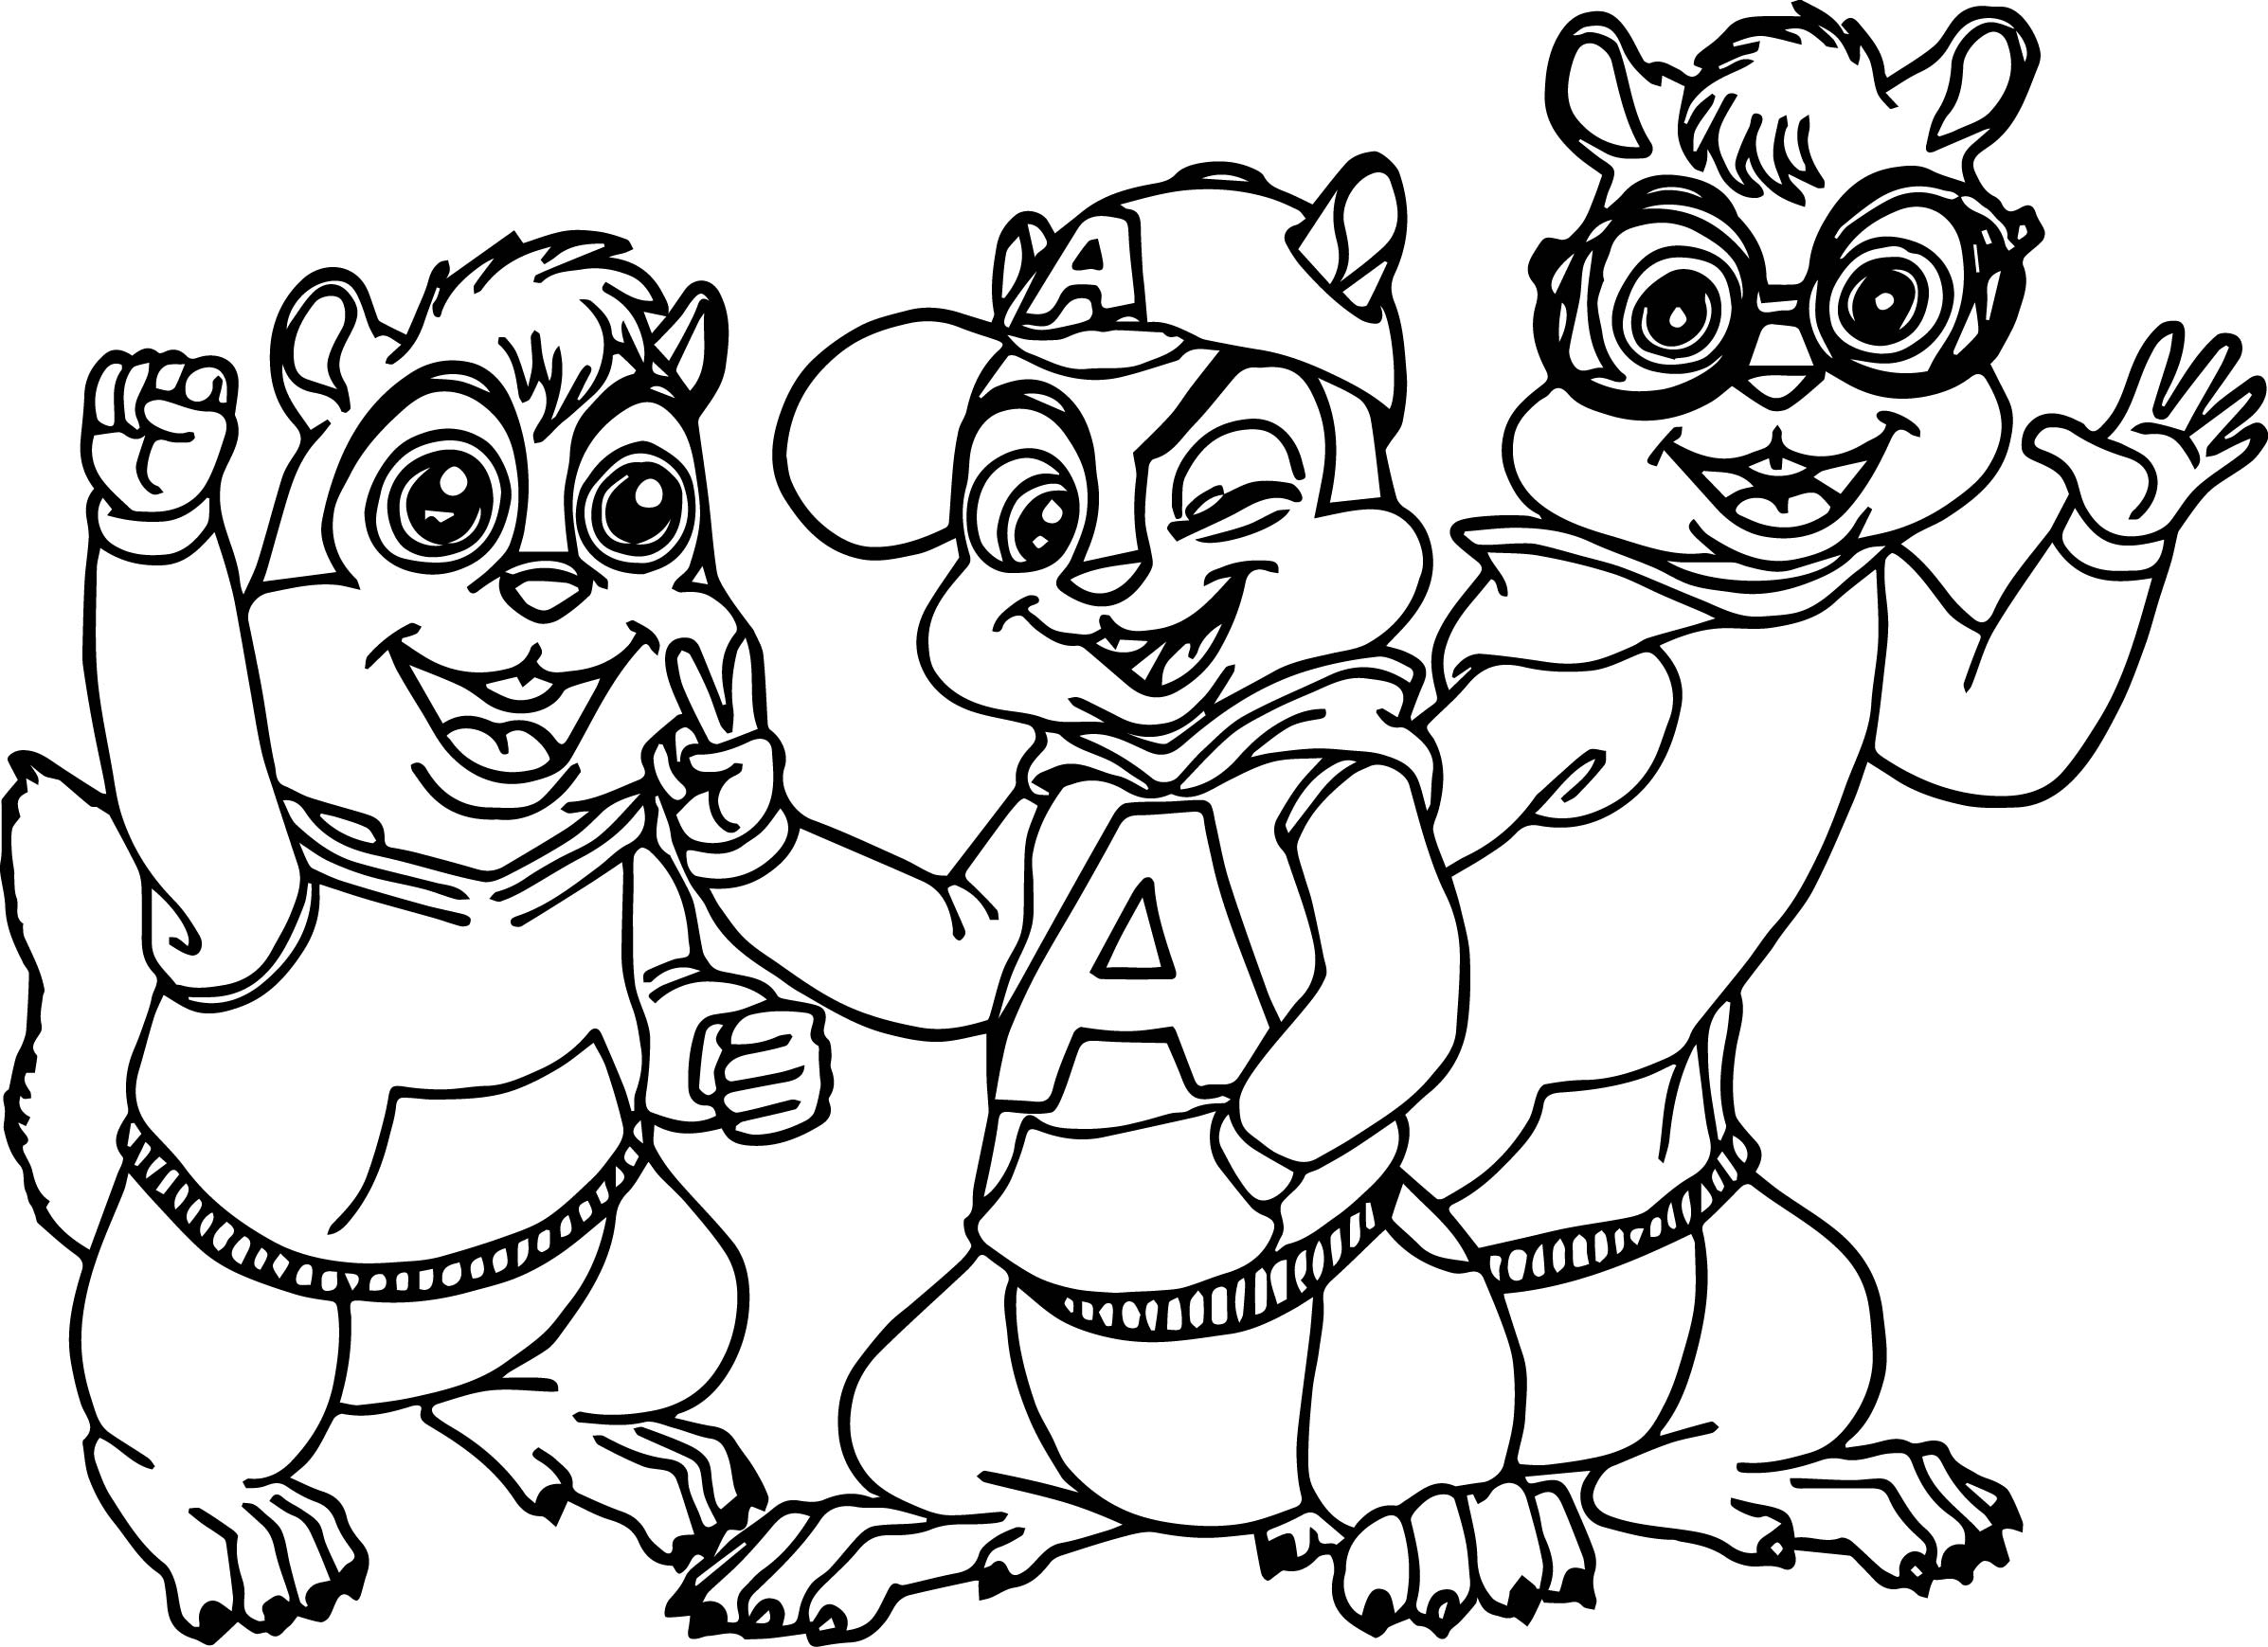 Alvin And The Chipmunks Coloring Pages - Costumepartyrun